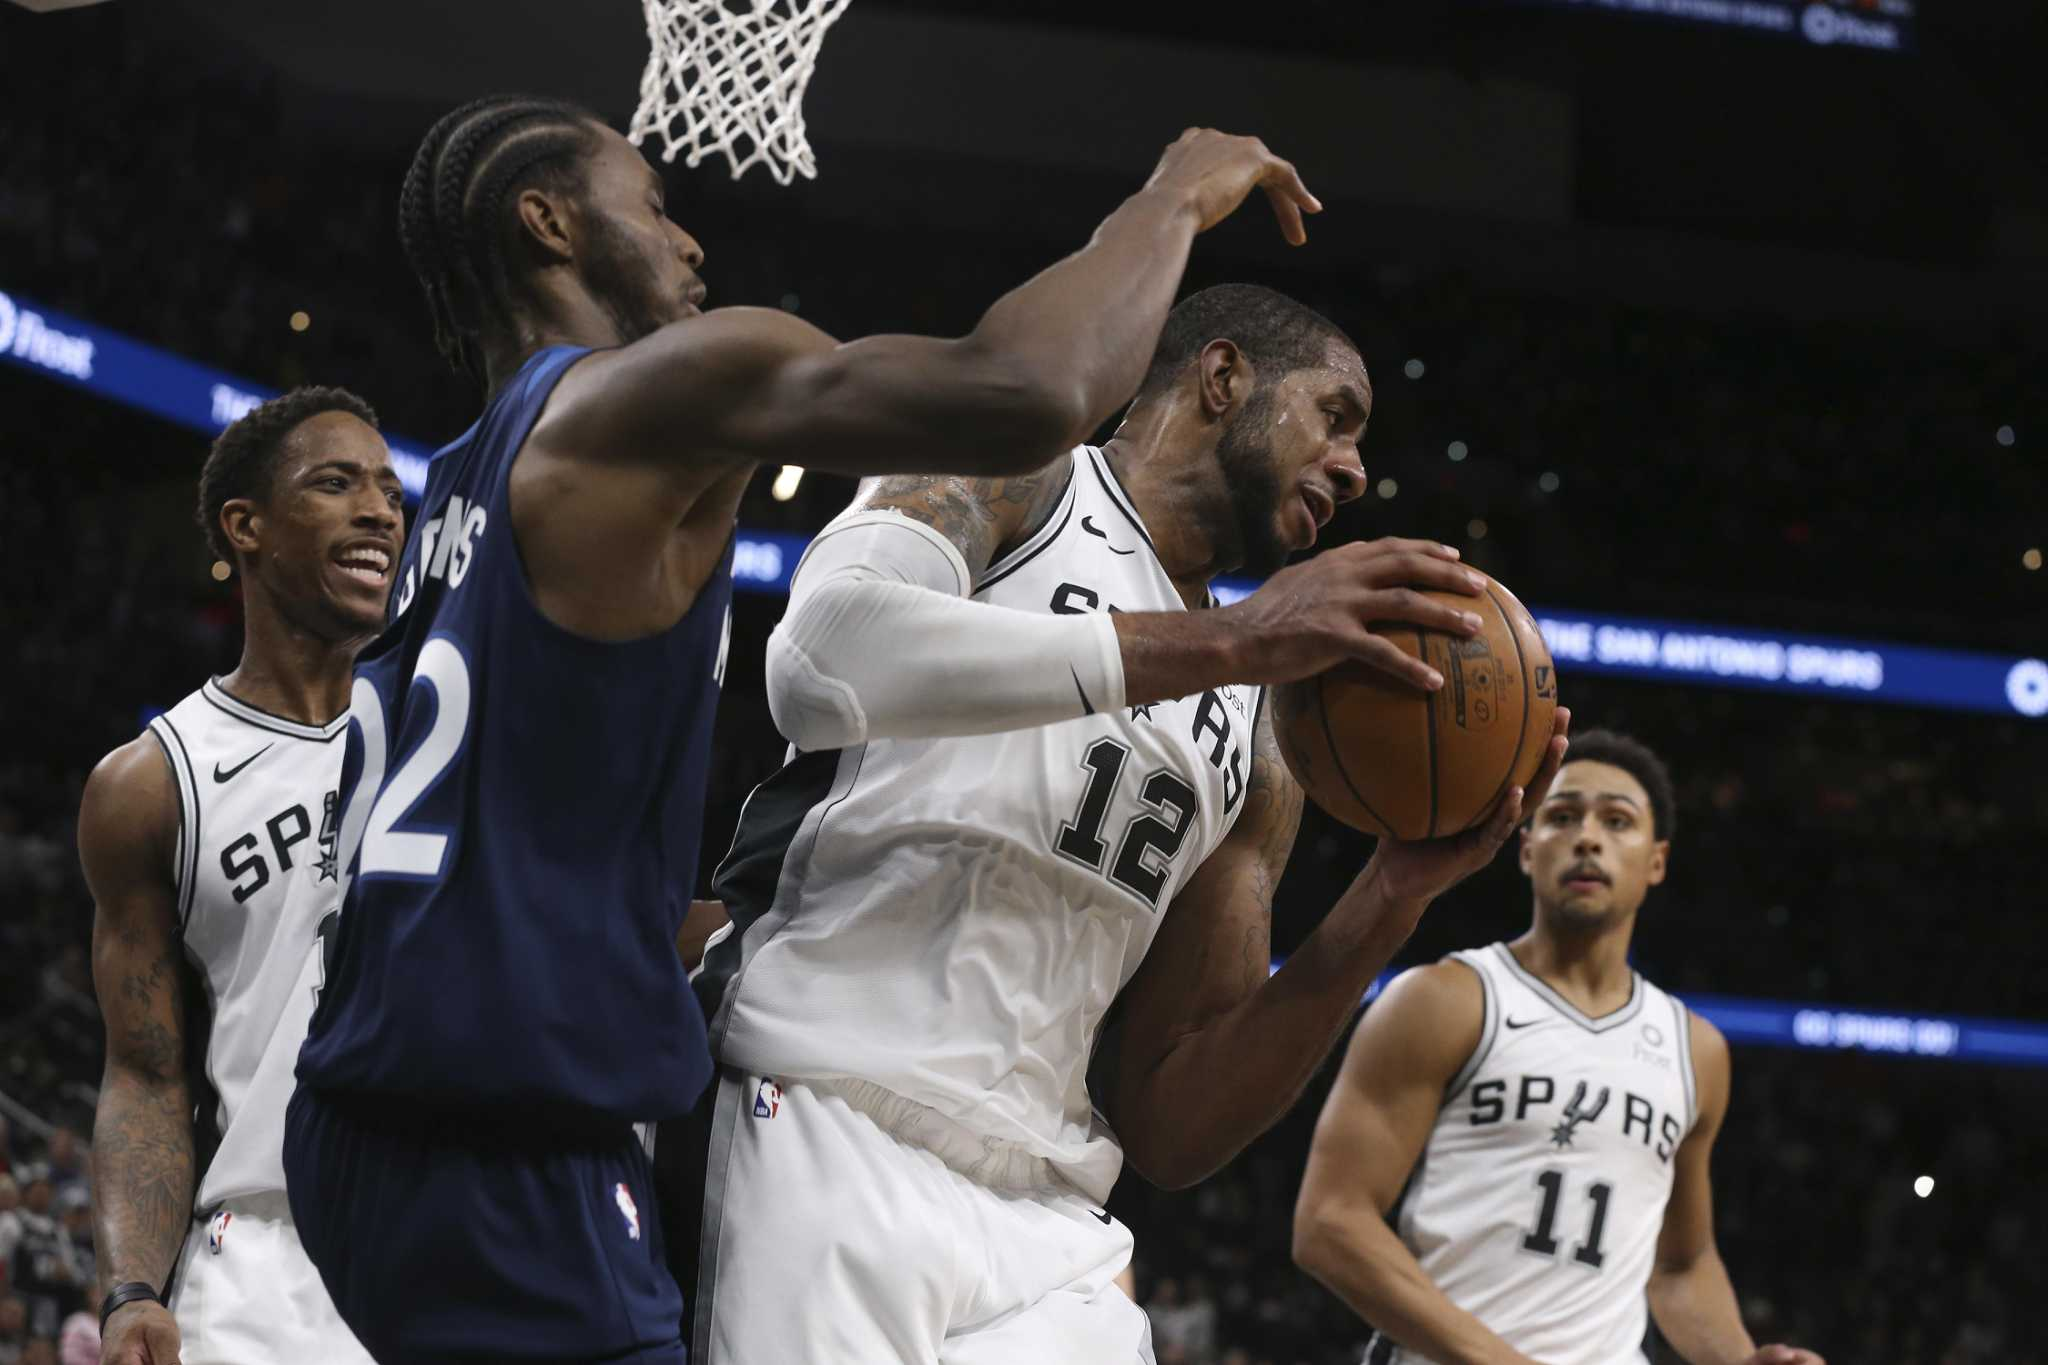 Aldridge 'horse' on boards for Spurs in win over Timberwolves